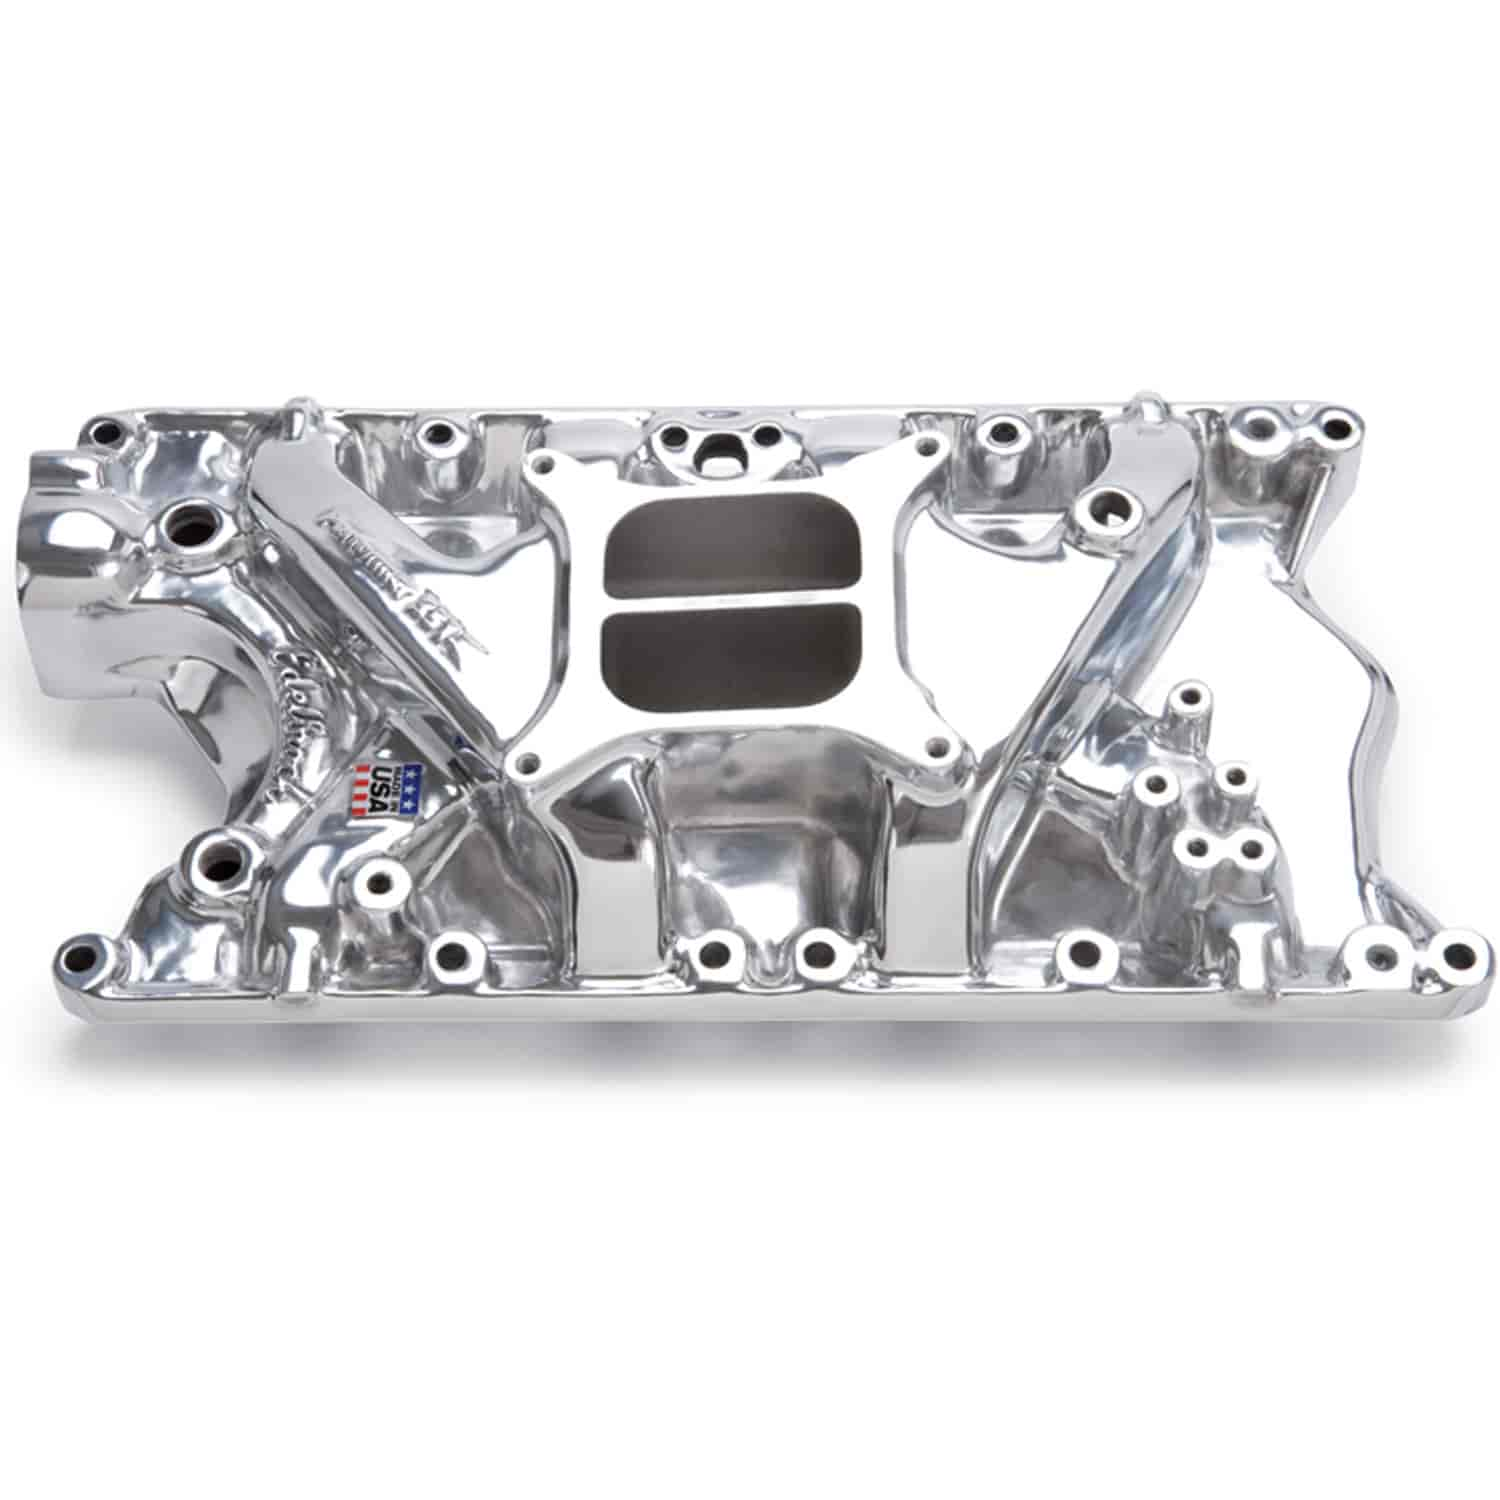 Edelbrock 21811 - Edelbrock Performer Manifolds for Ford